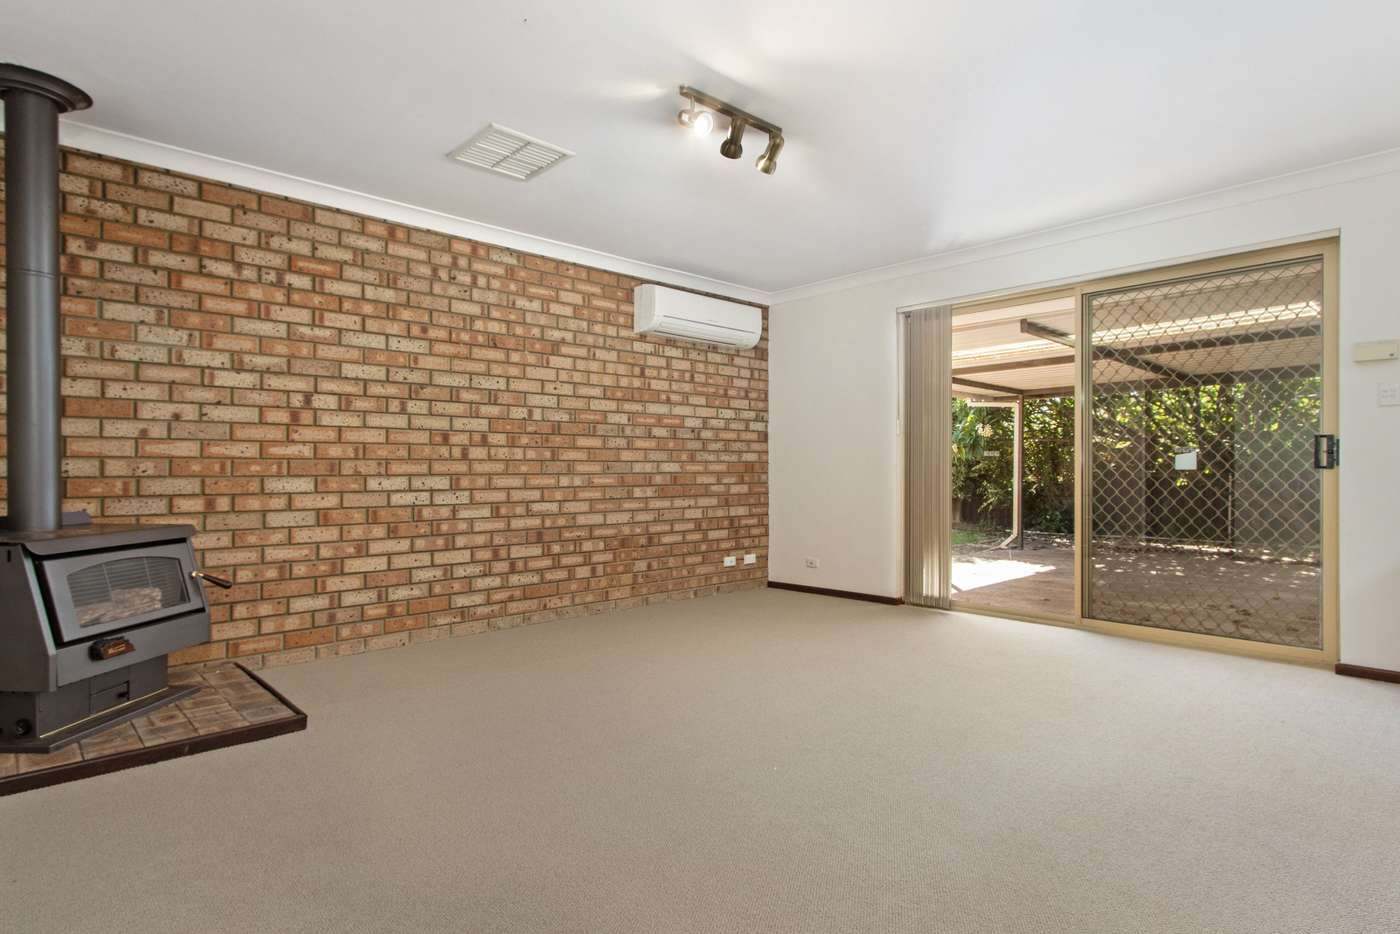 Seventh view of Homely house listing, 10 Arkwell Avenue, Rockingham WA 6168